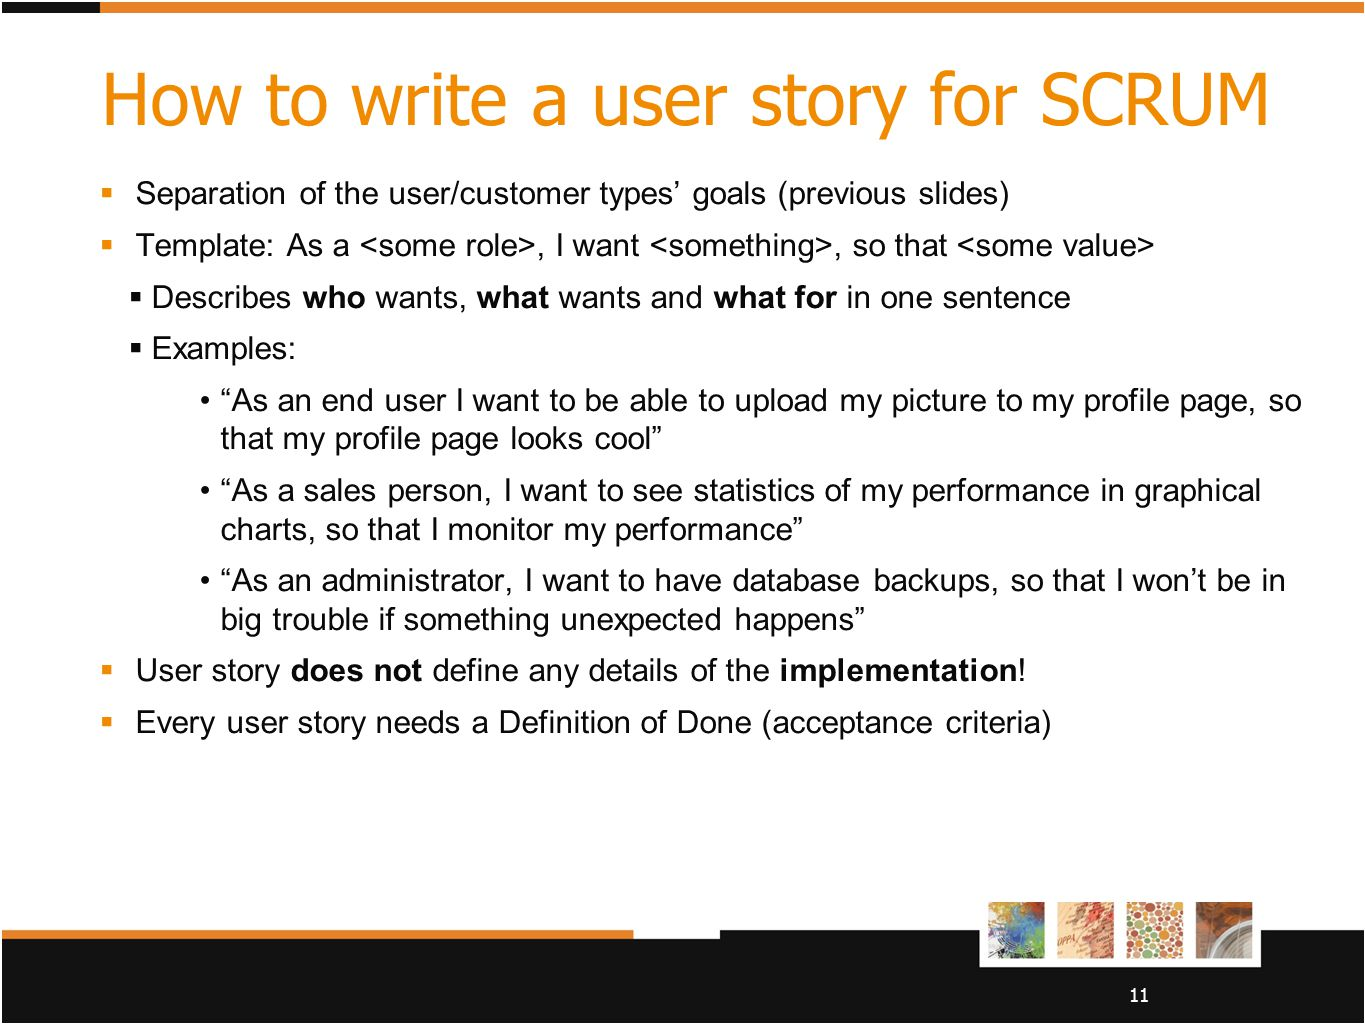 User story in brief merja bauters ppt video online download for As a user i want user story template